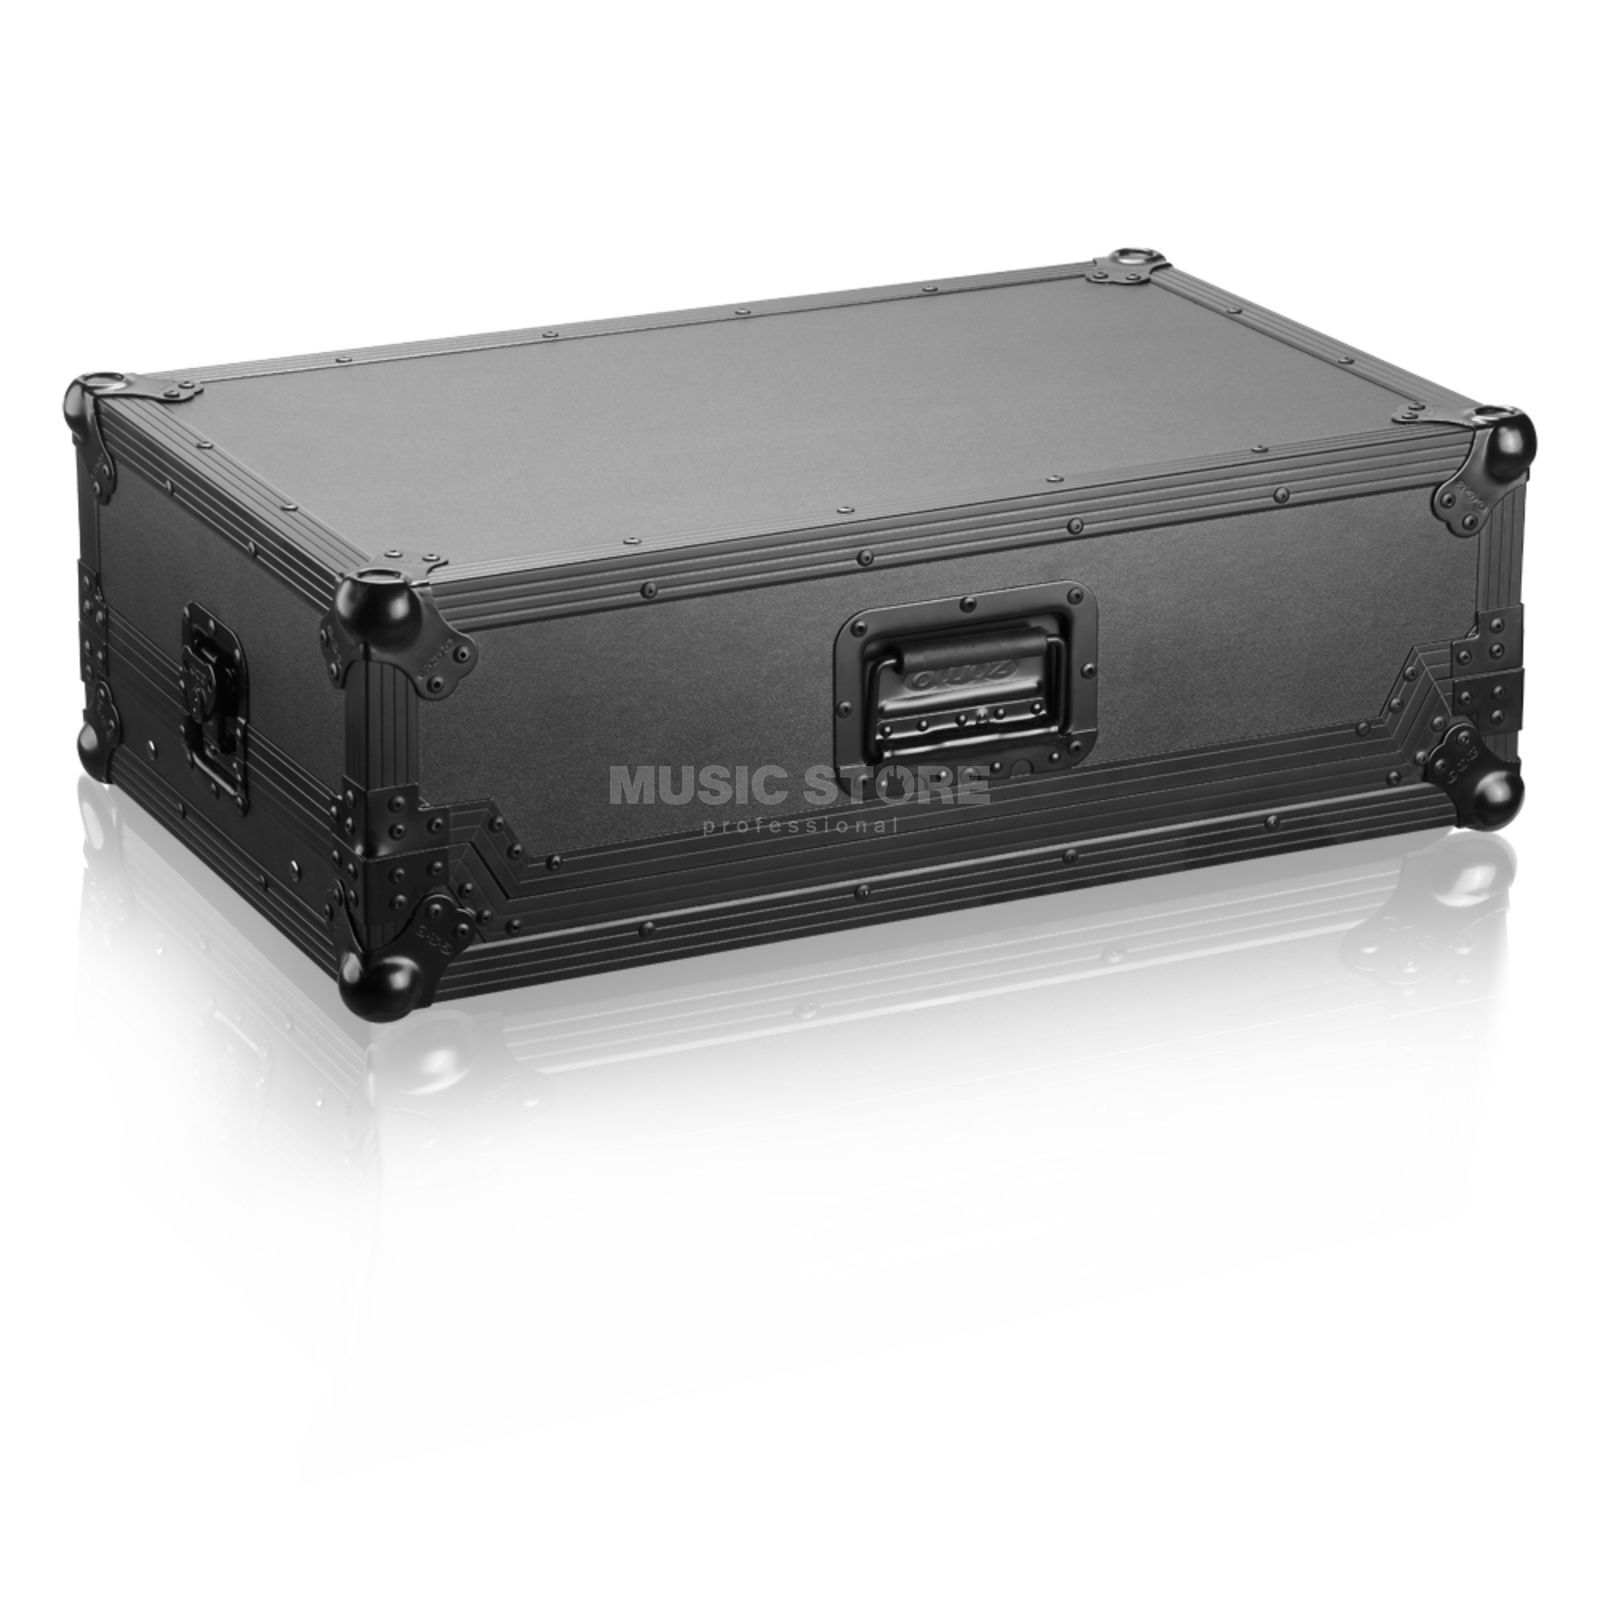 Zomo P-XDJ-R1 PLUS NSE Case for XDJ-R1 + Laptop Immagine prodotto